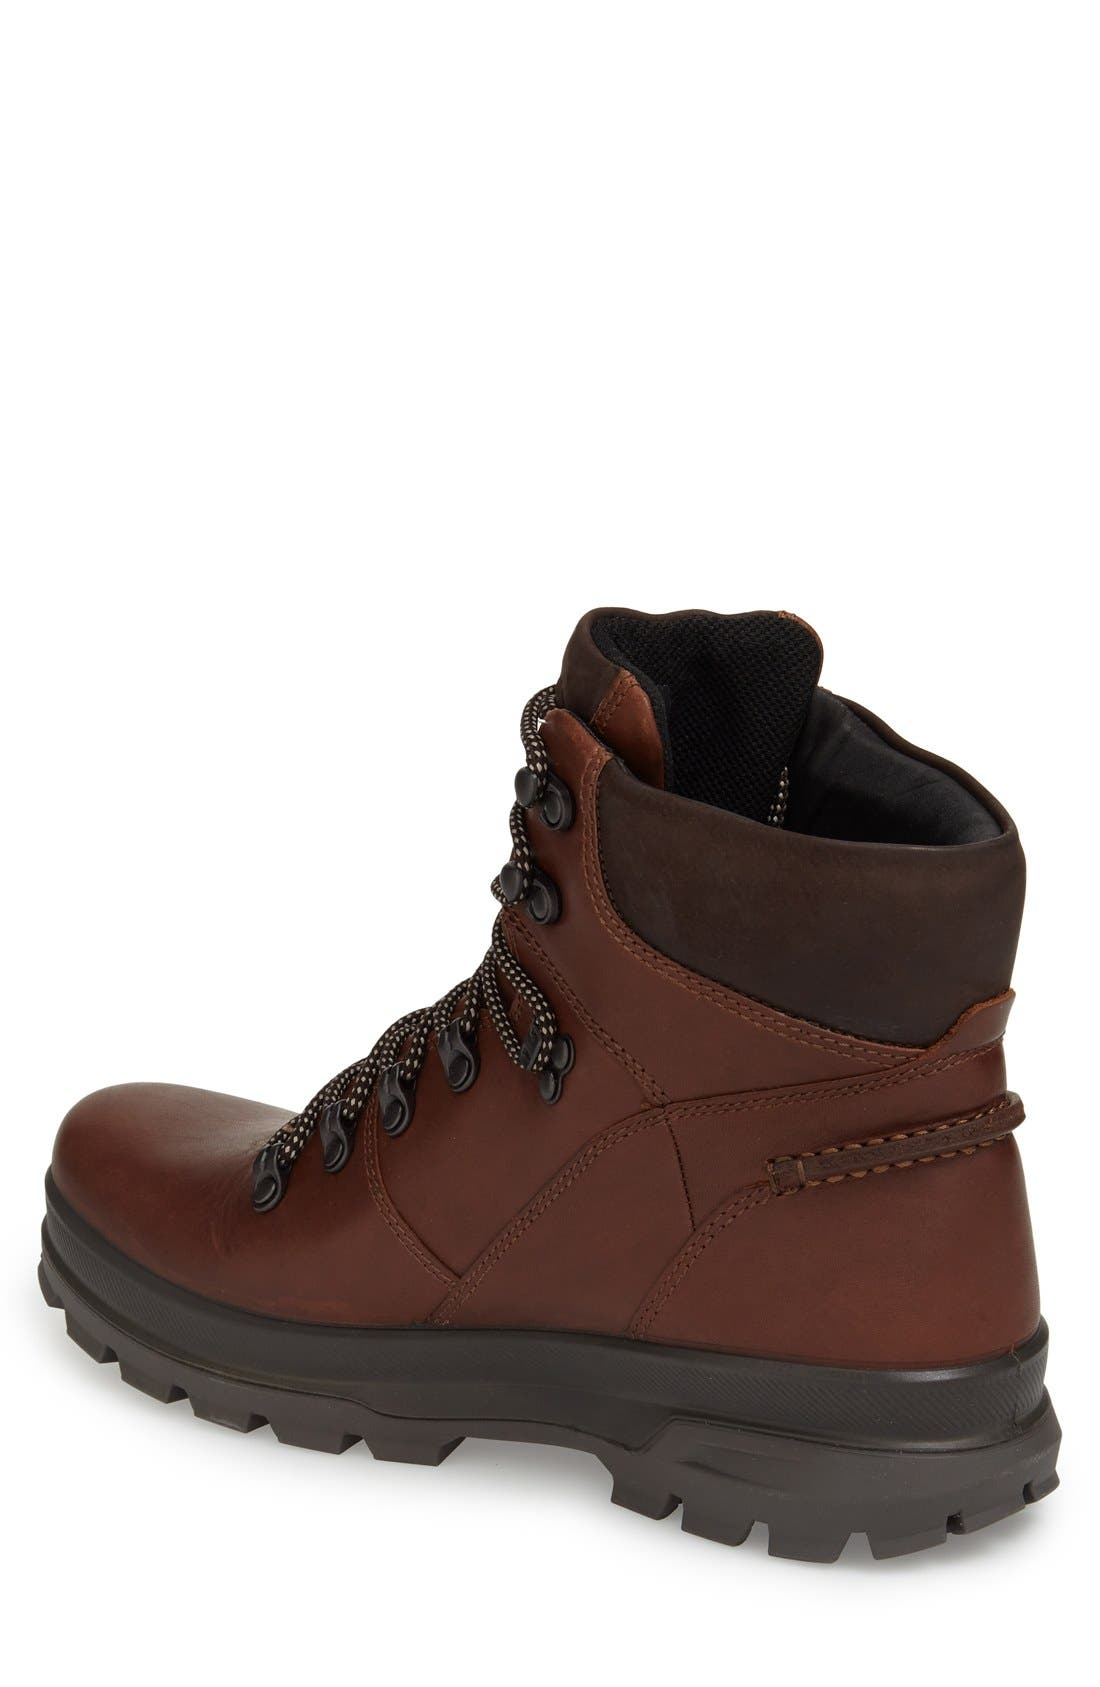 Alternate Image 2  - ECCO 'Rugged Track GTX' Hiking Boot (Men)